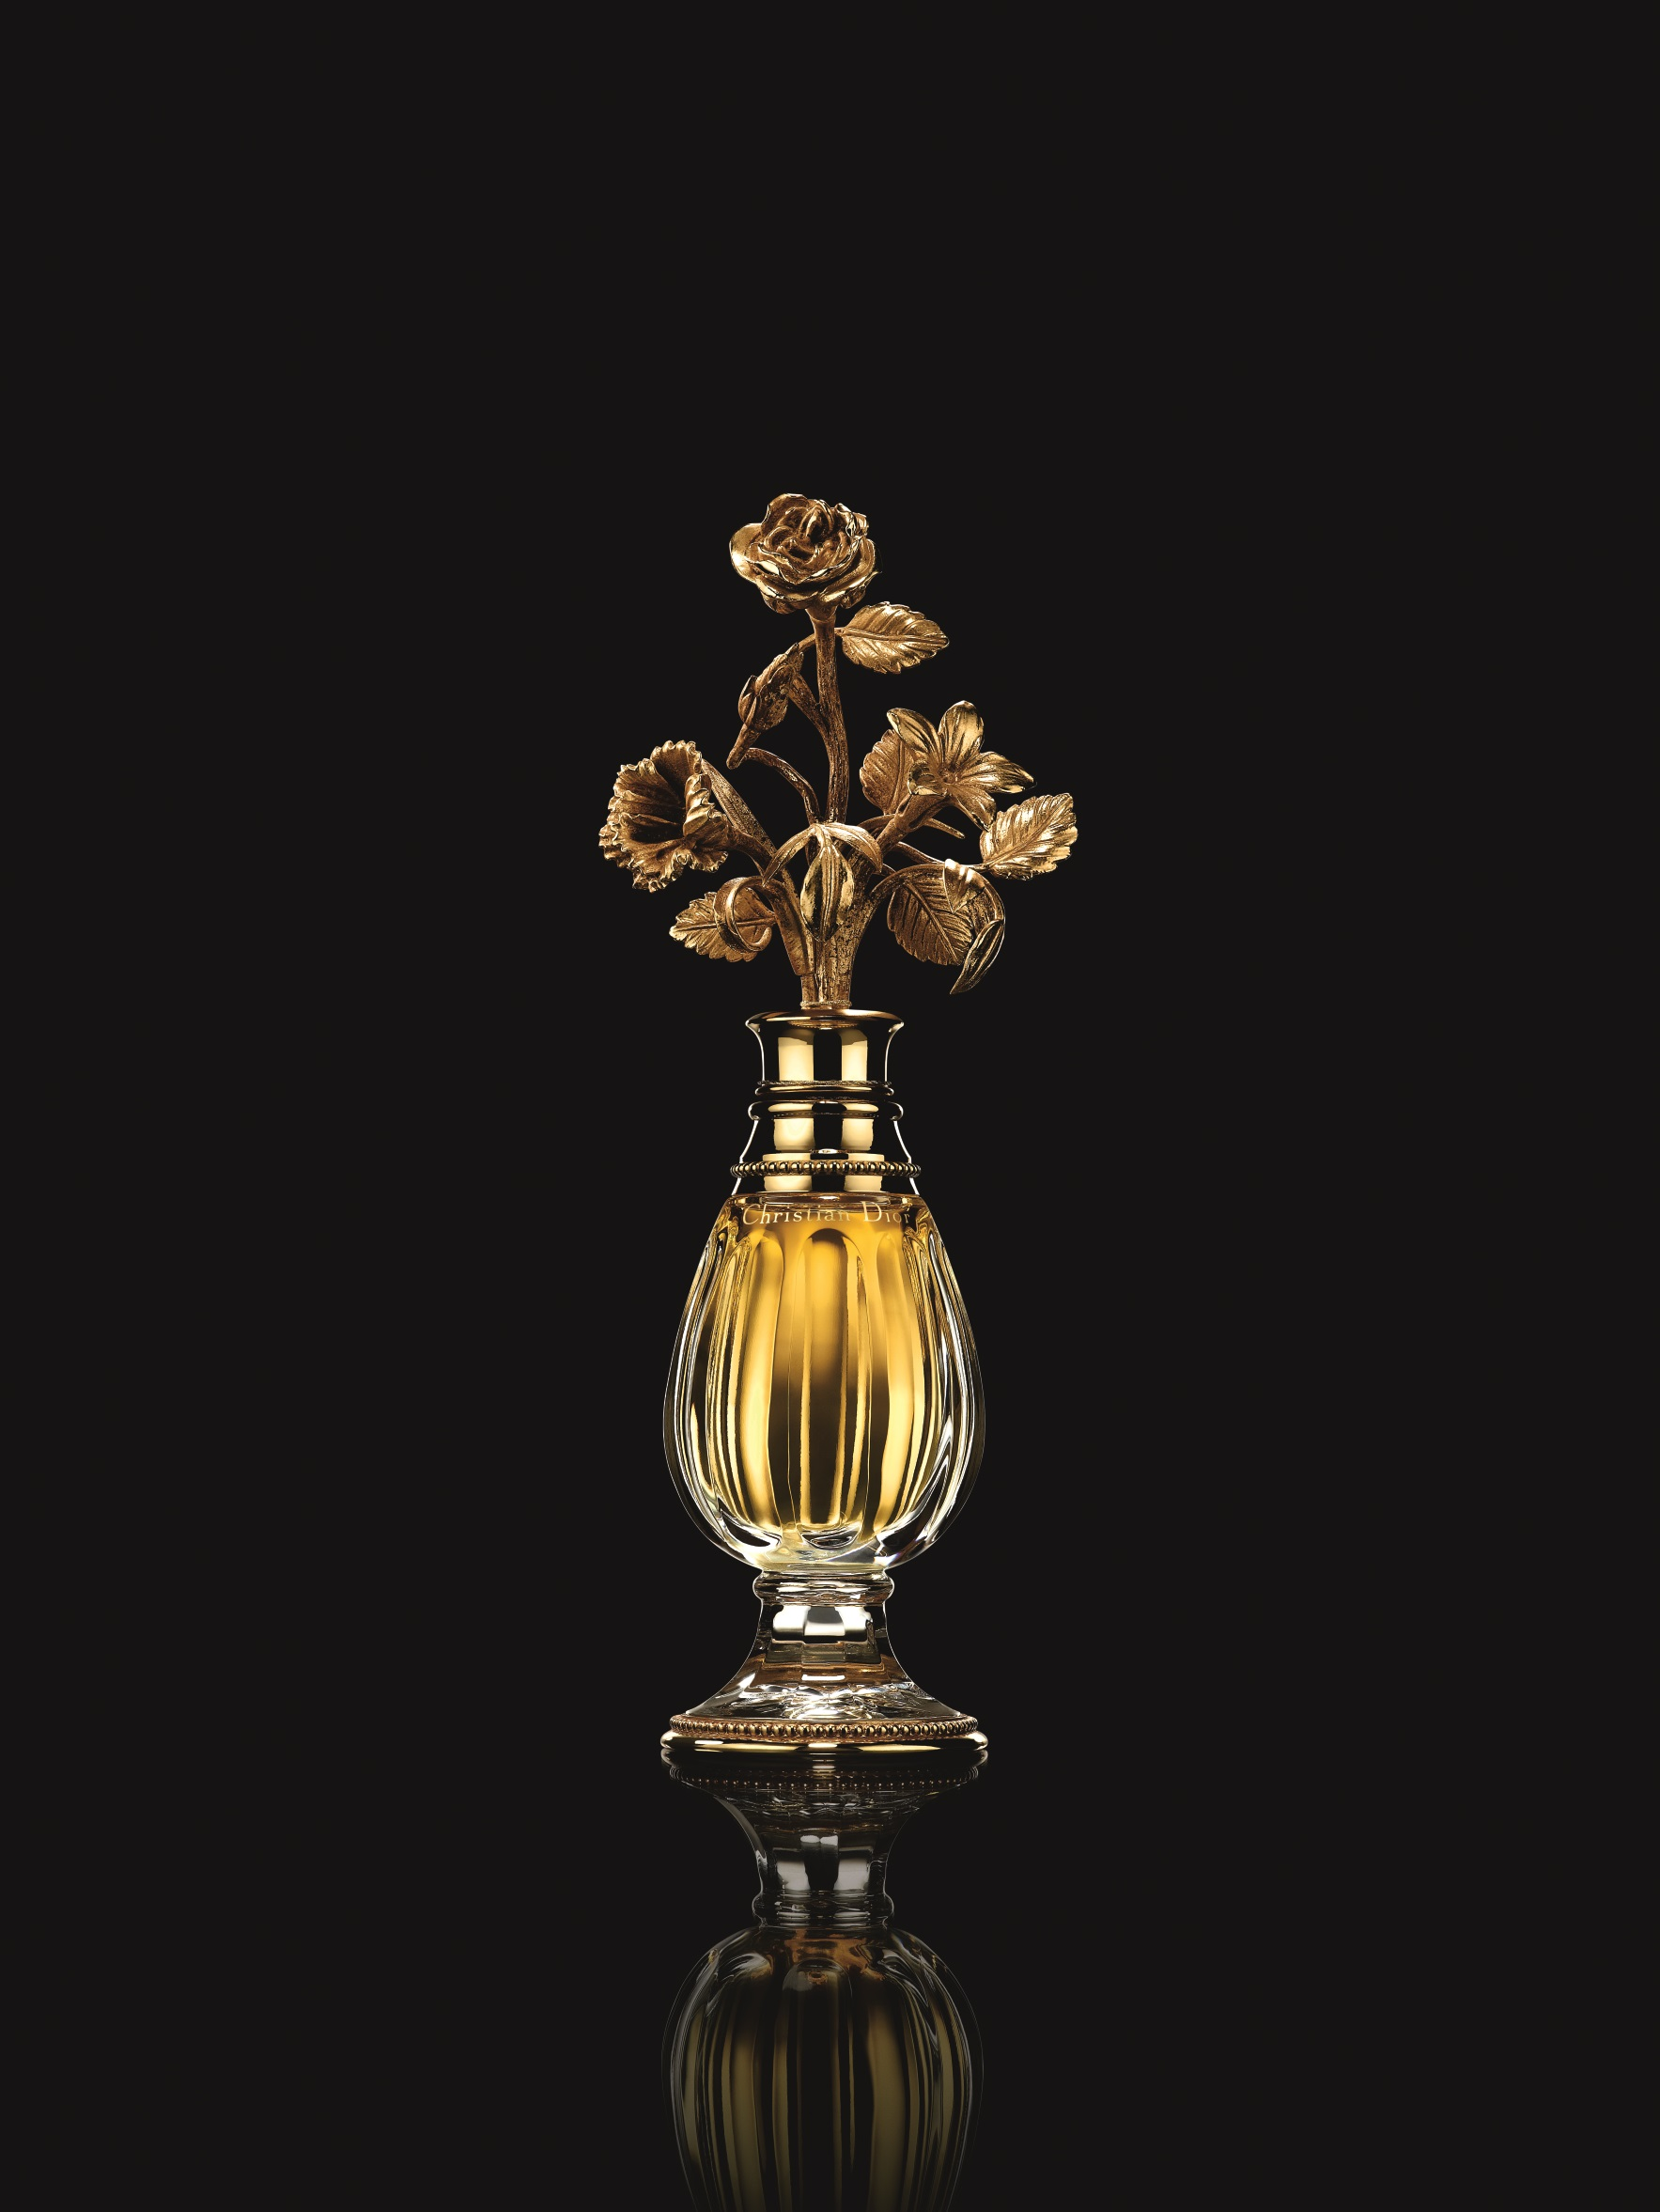 Baccarat crystal bottle designed by Christian Dior for Diorissimo perfume, 1956. Photo (c) Laziz Hamani. Christian Dior Parfums collection.jpg